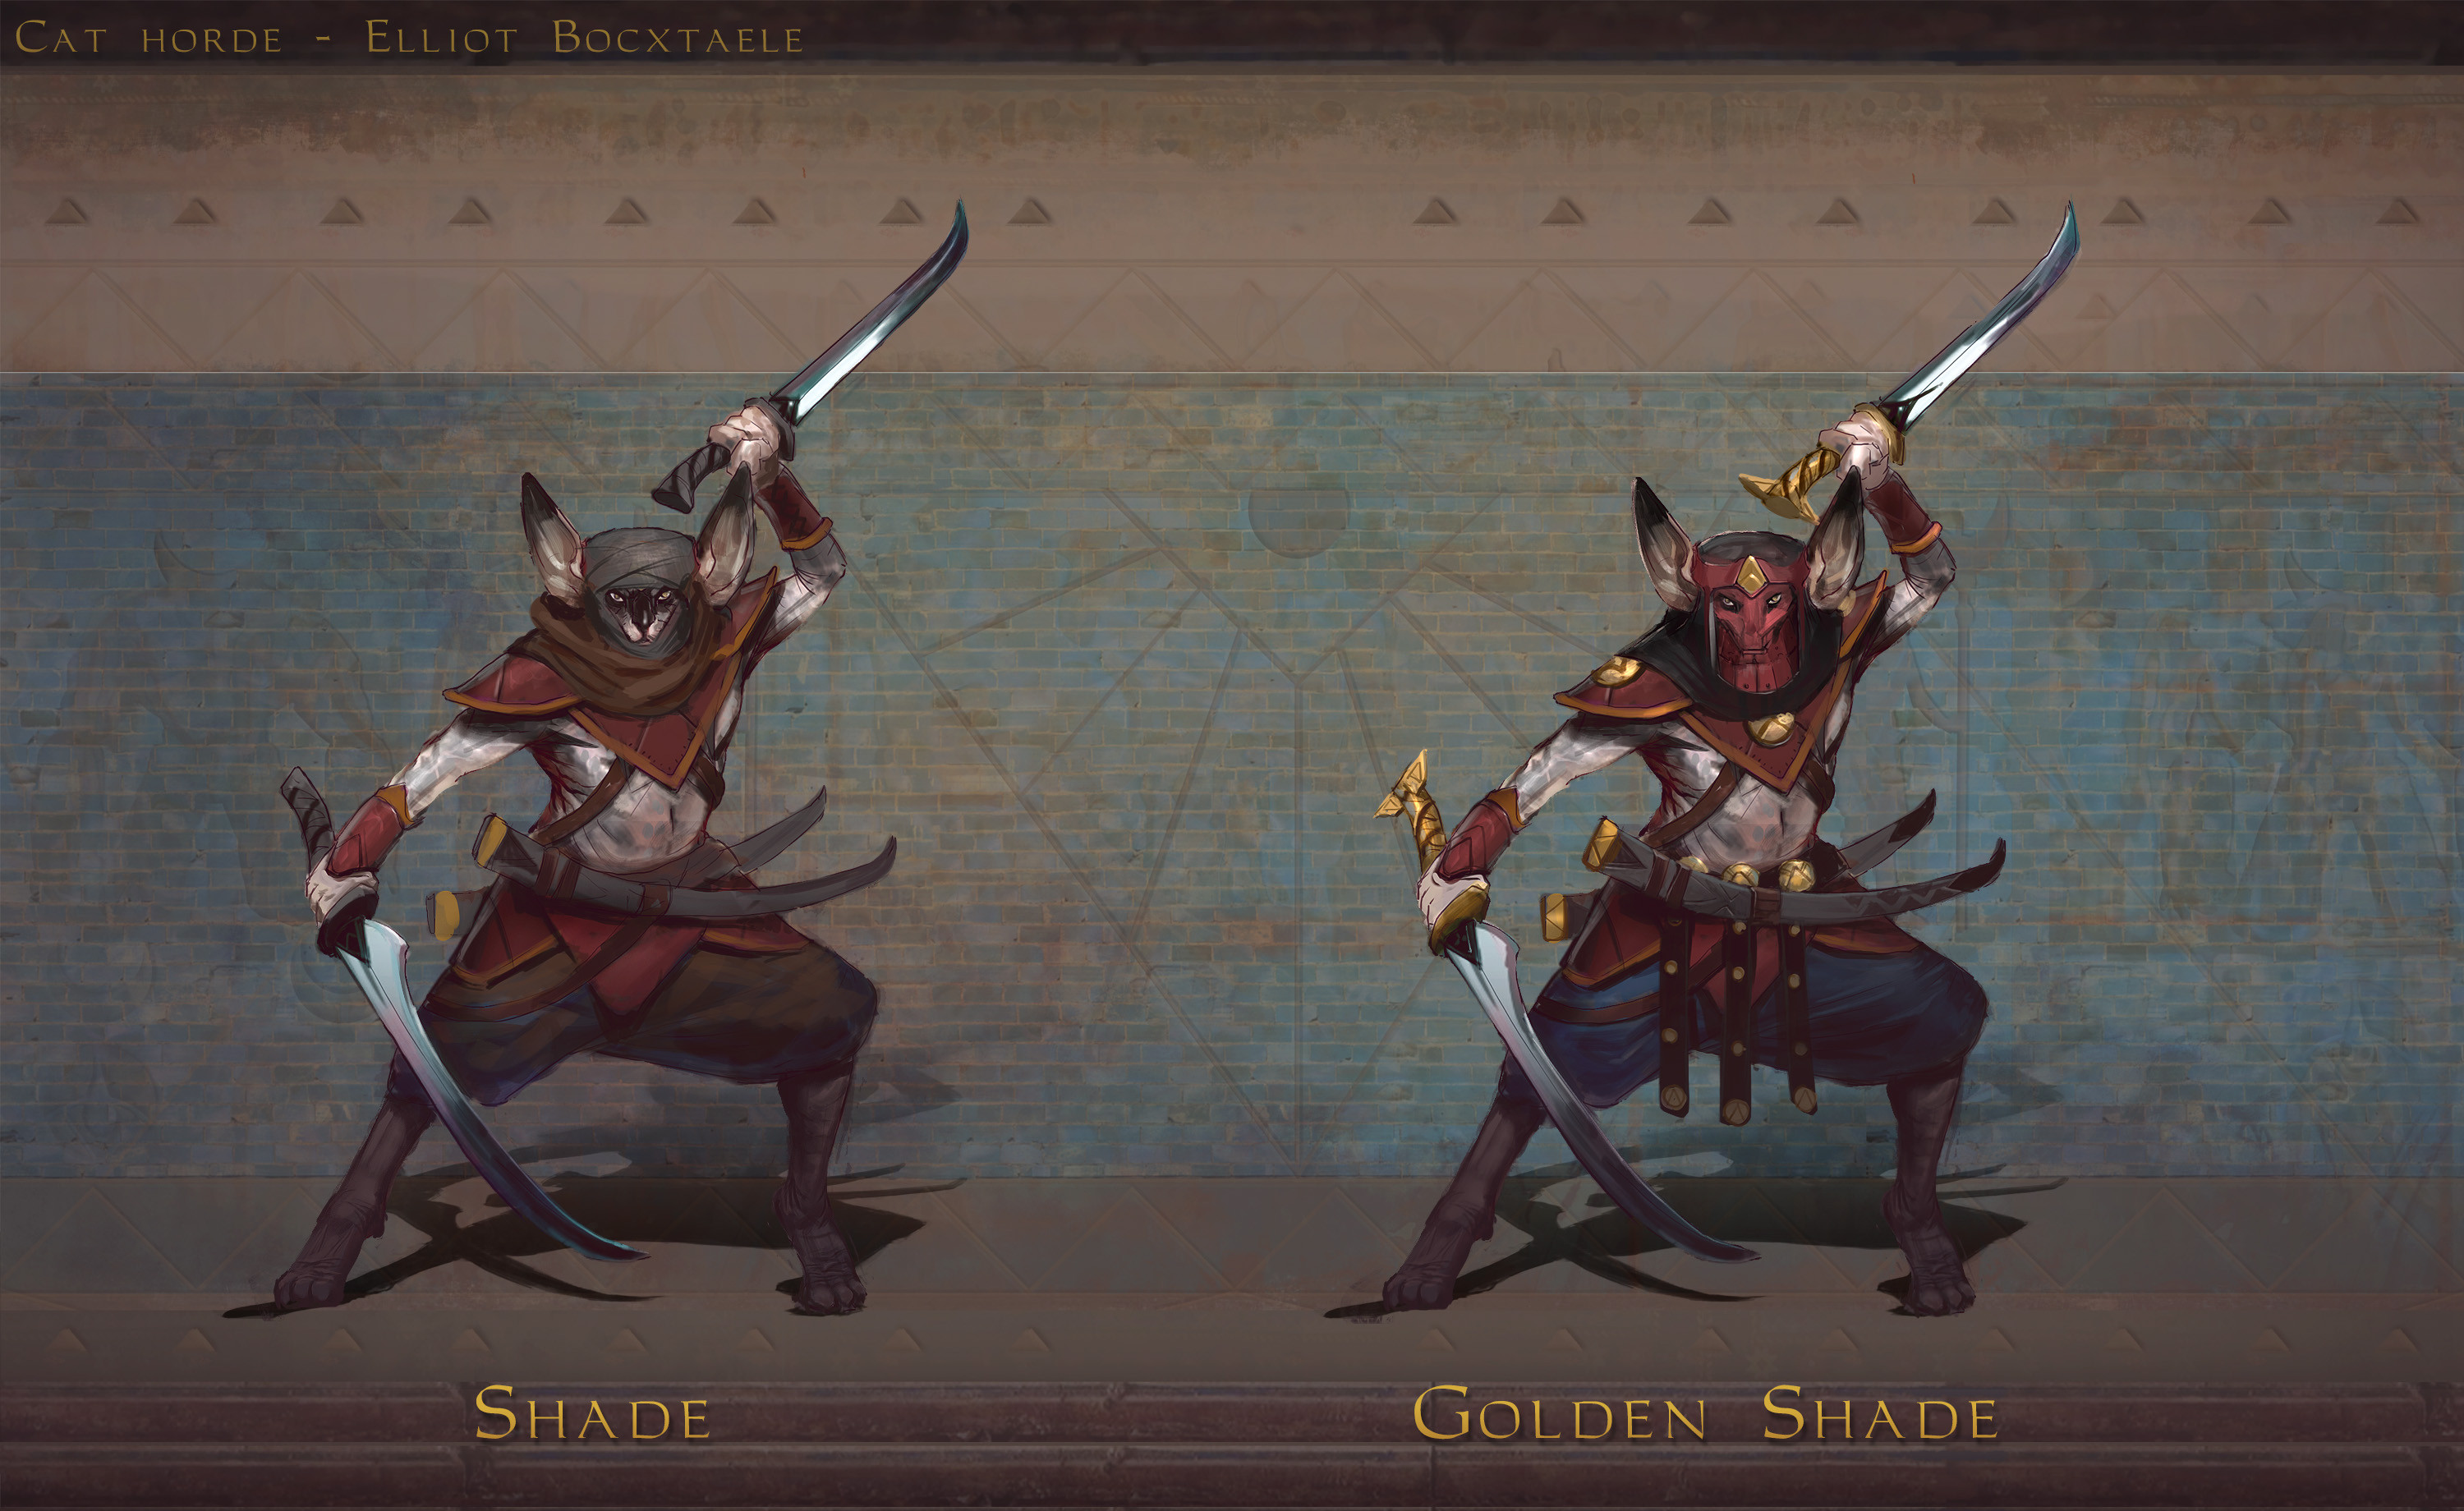 TIER 2 Shades. The cat hordes have always been riddled with intruige, crime and immorality. Its only when the Great Khan created the House of Shades that these skills were finally put to good use. Recruited from the urban lower classes, criminals and...